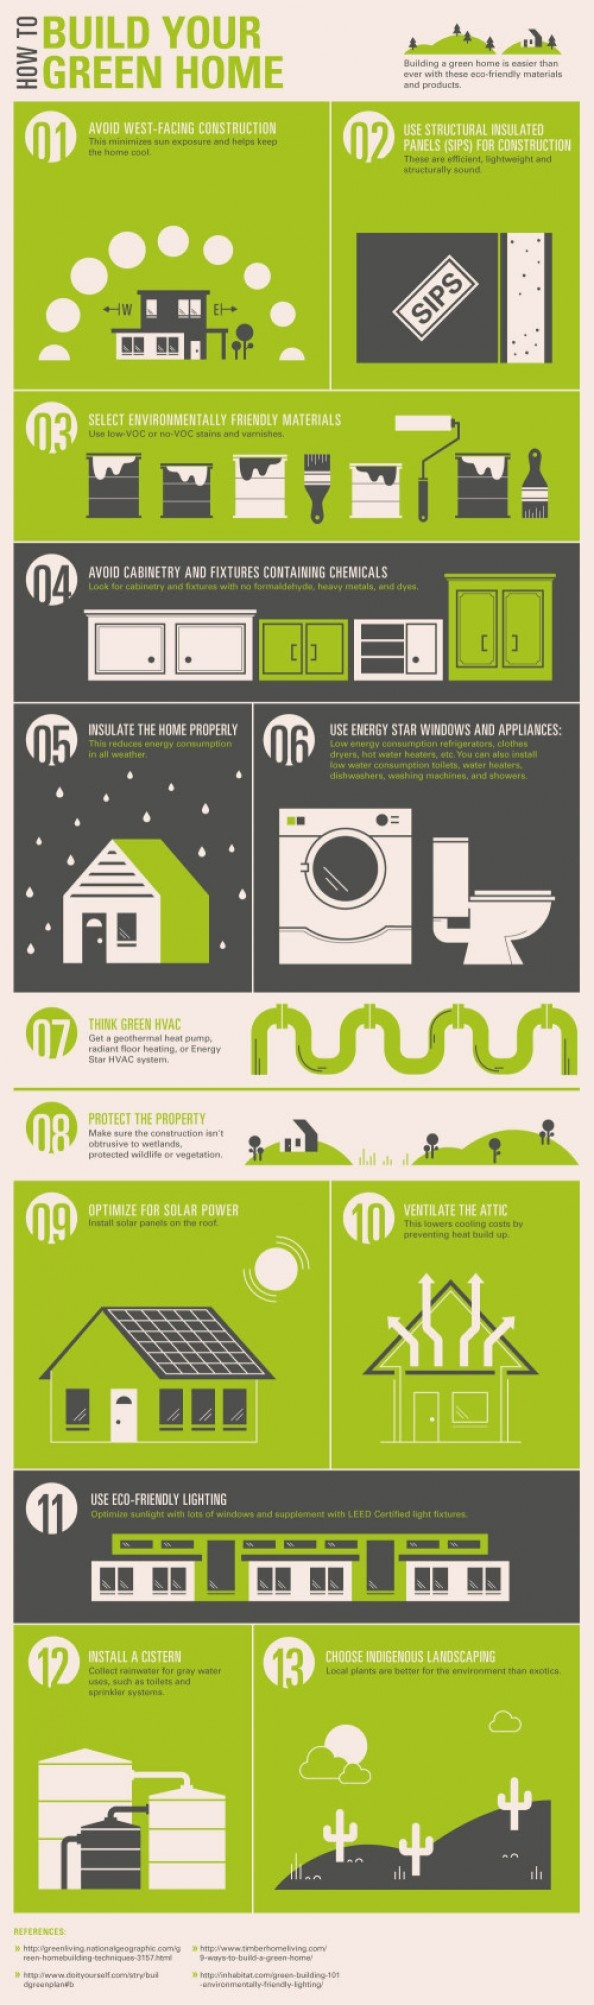 Build Your Dream Green Home